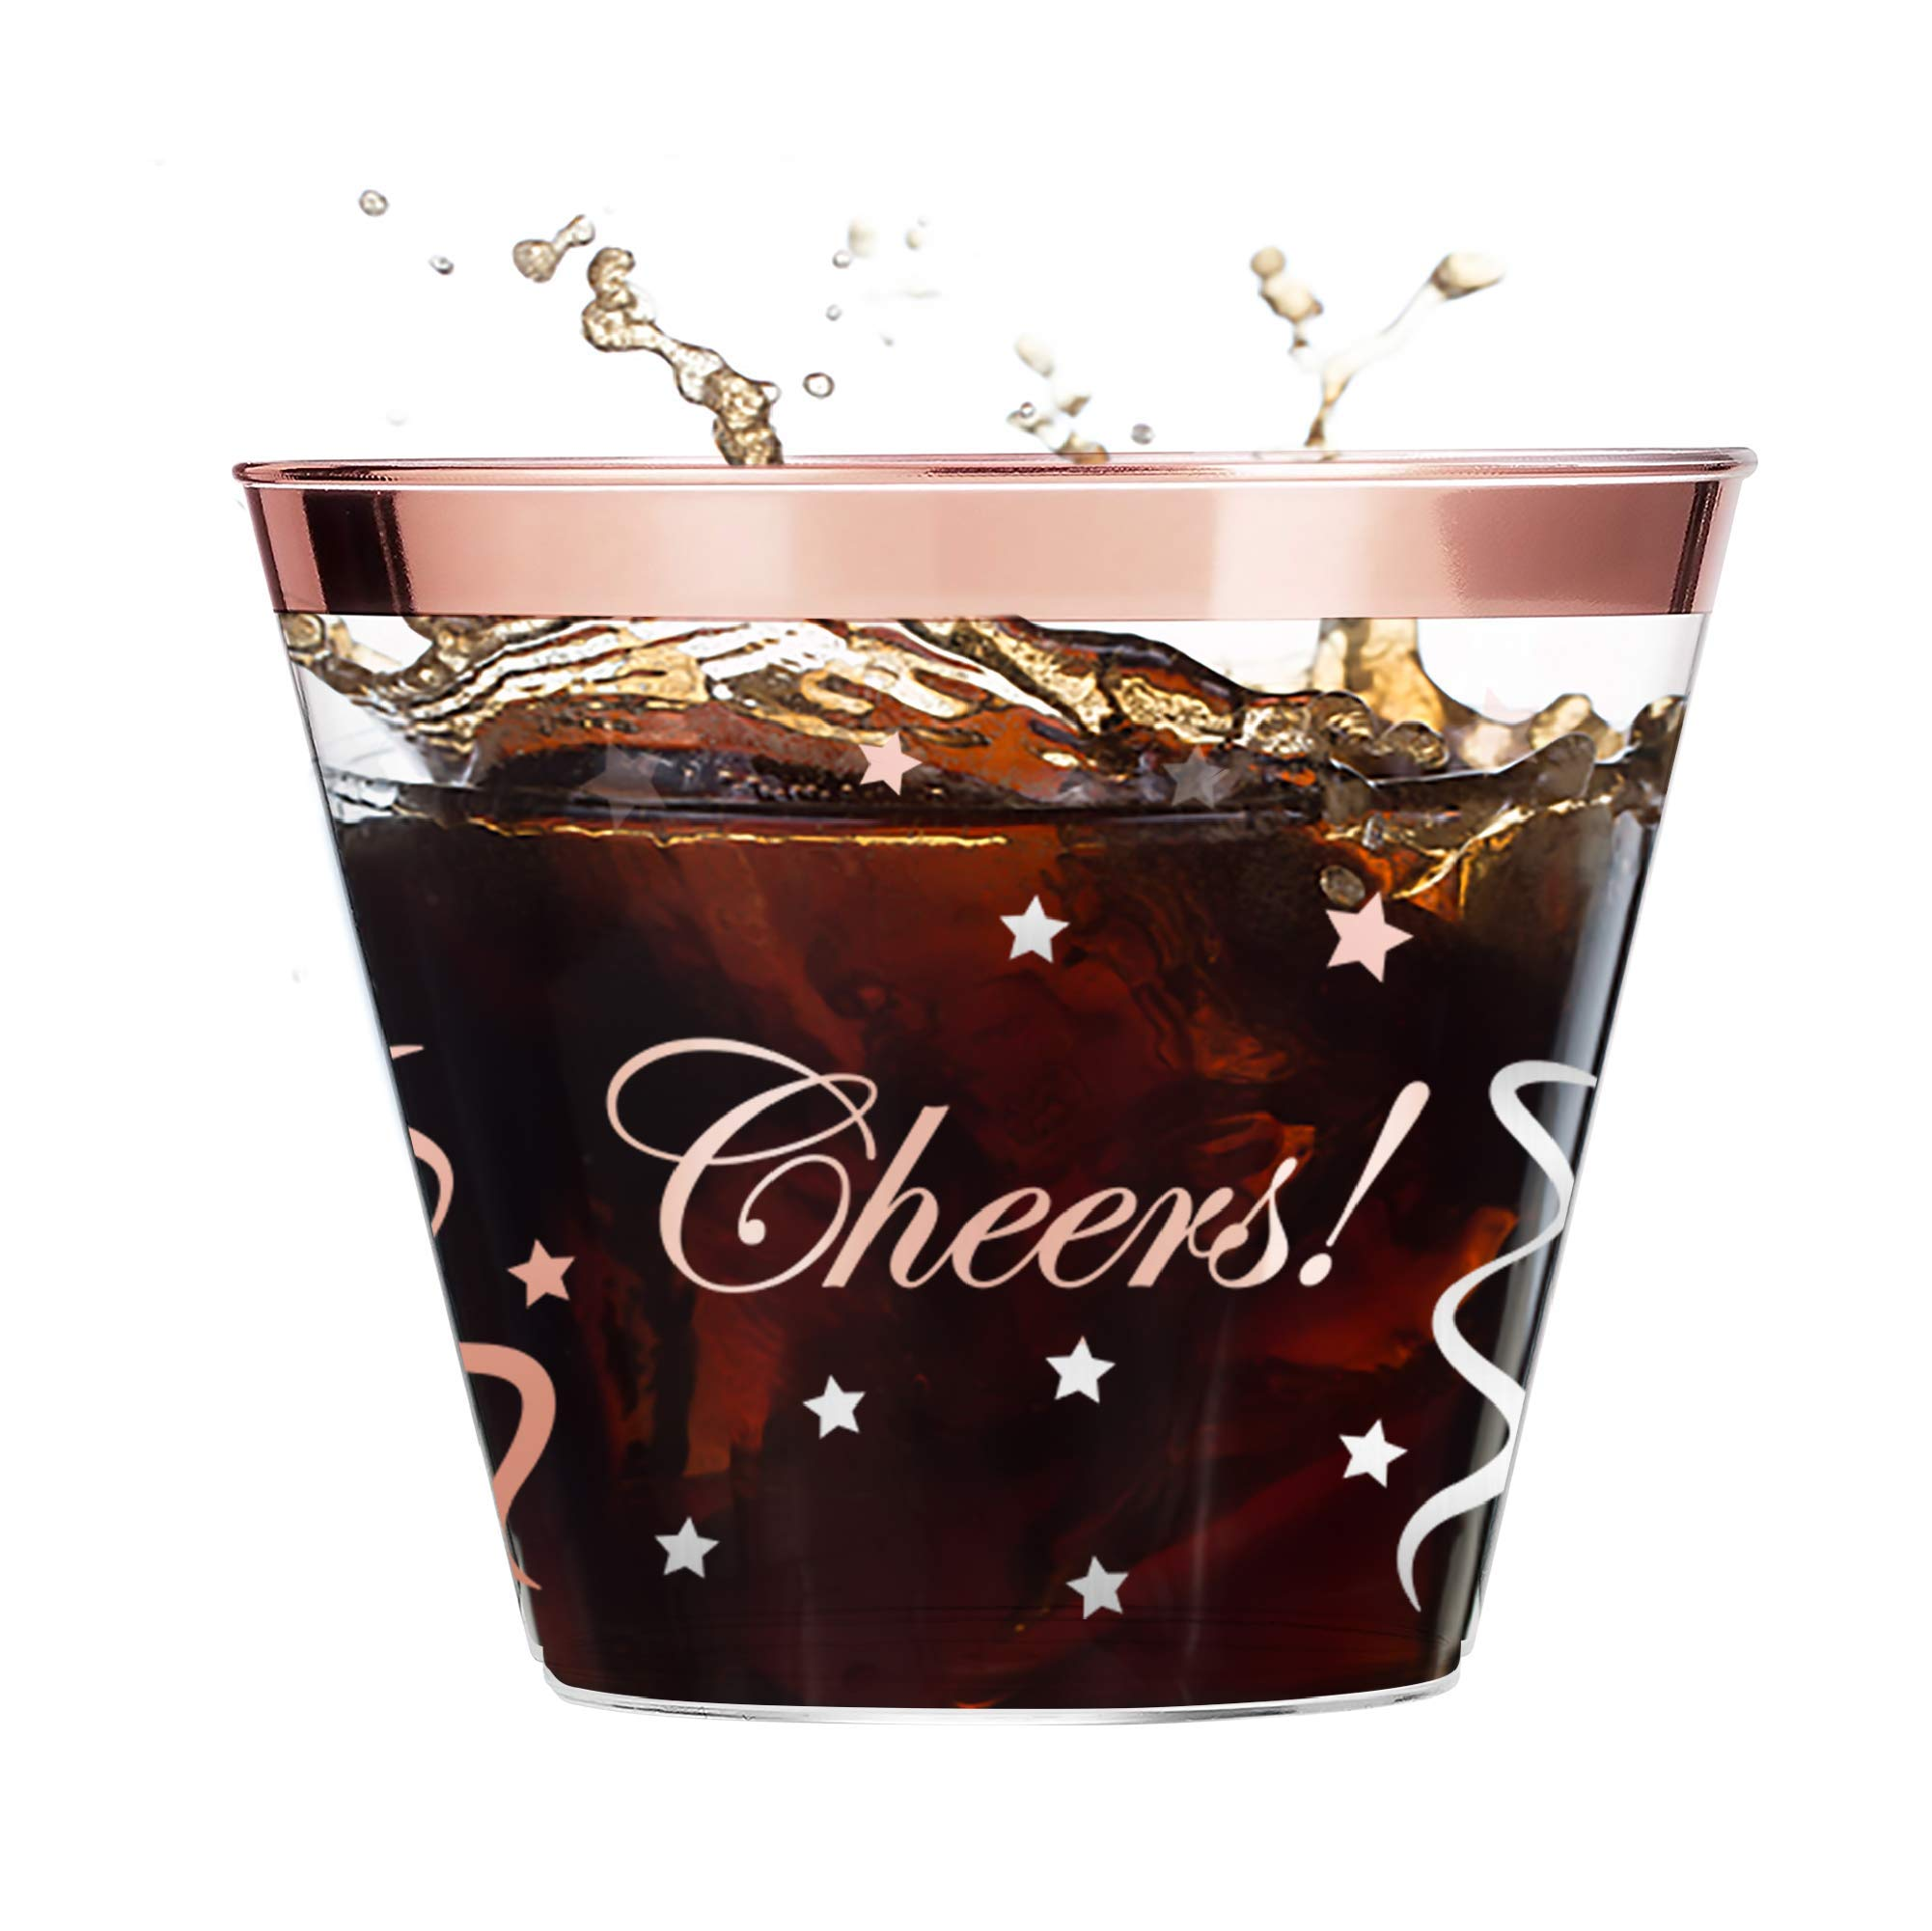 Premium 100 Rose gold rimmed plastic cups''Cheers and Confetti design'' 9oz Clear Plastic wedding Glasses great for any holiday, birthday, and wedding by NSinc